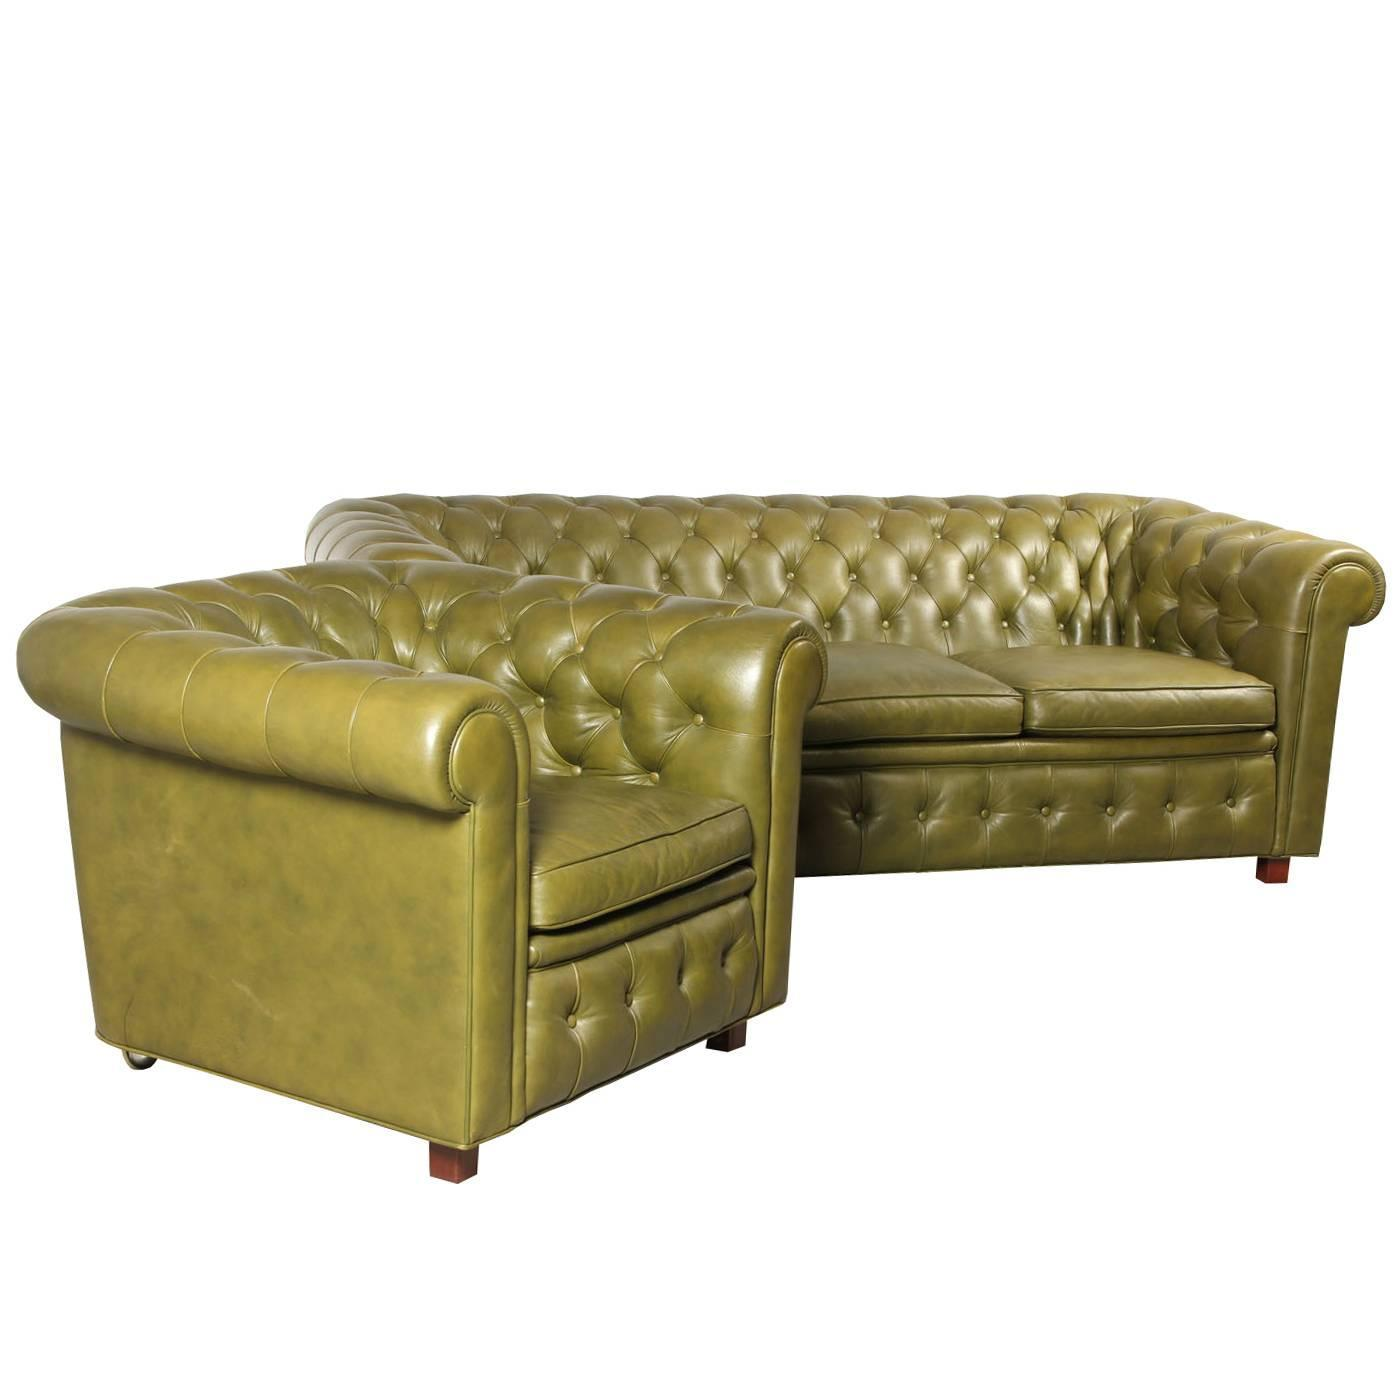 Leather Chesterfield Style Sofa and Armchair by Arne Norell at 1stdibs